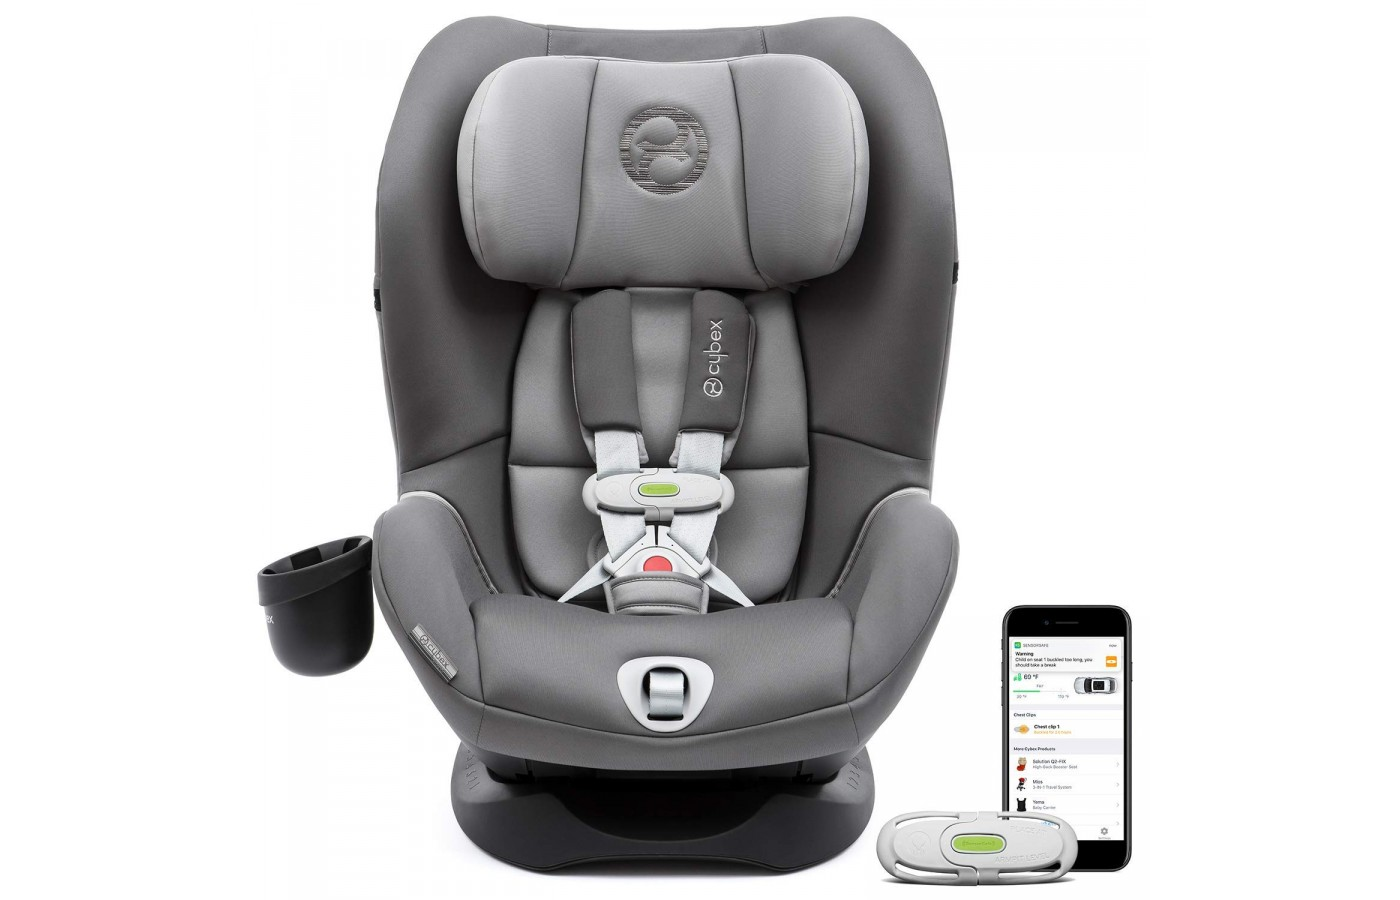 This car seat has Smart SensorSafe technology